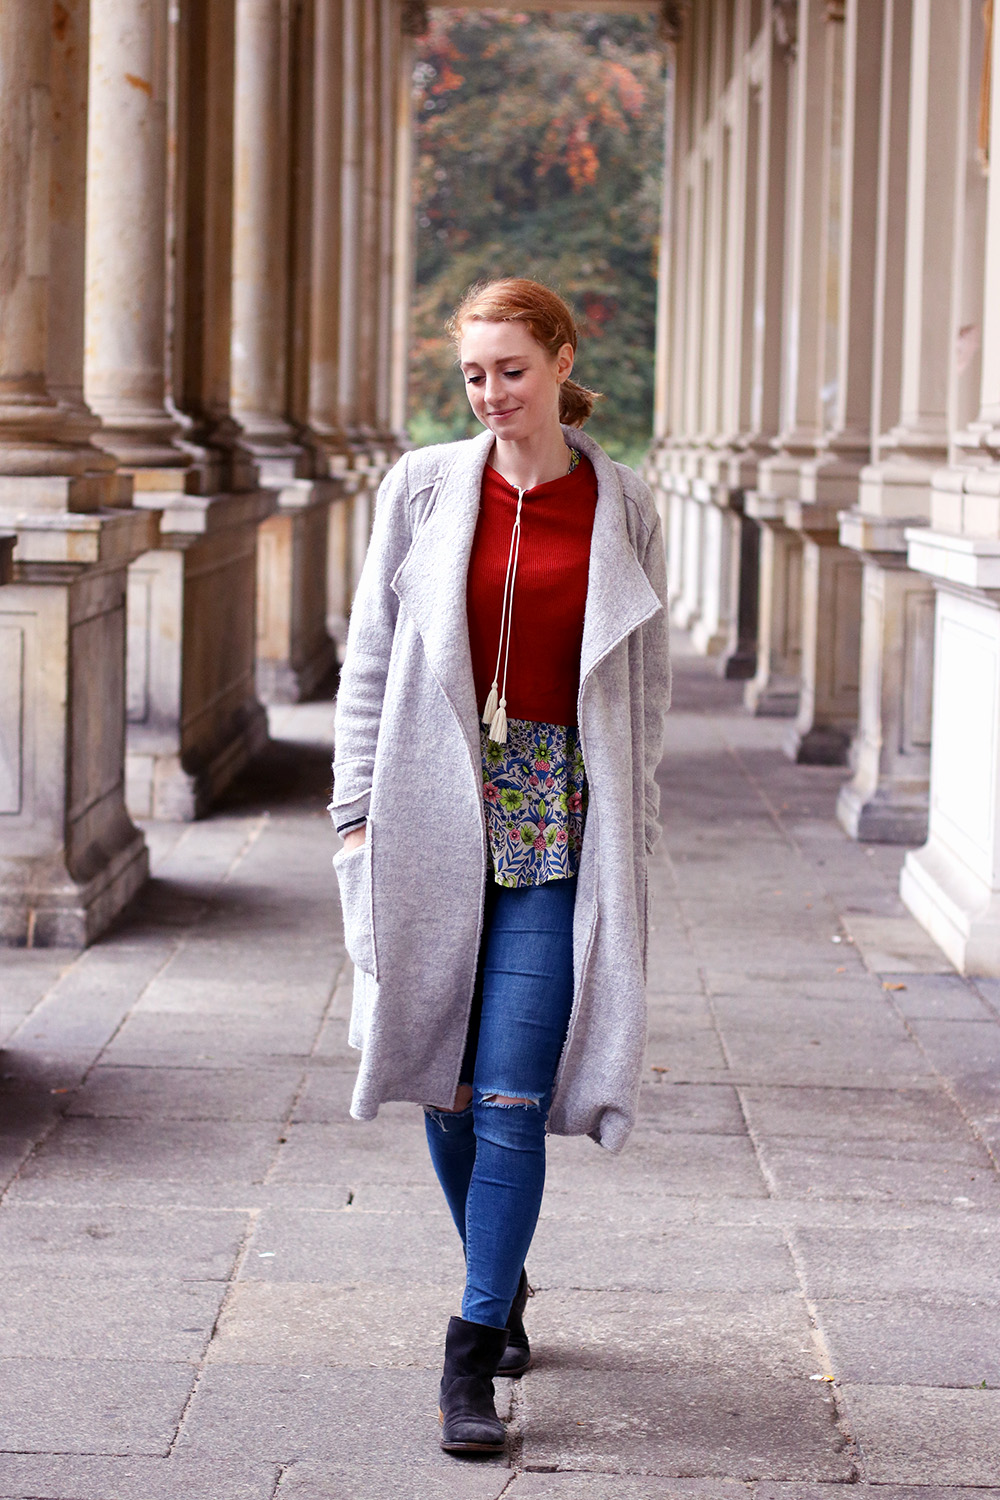 jeans, blau, ripped, Top 5 Herbst Must Dos, Herbst Tipps, Herbst Trends, Mode, Mode Tipps, Styling Tipps, Herbst Outfit, Modeblog, Berlin, Influencer, Advance Your Style